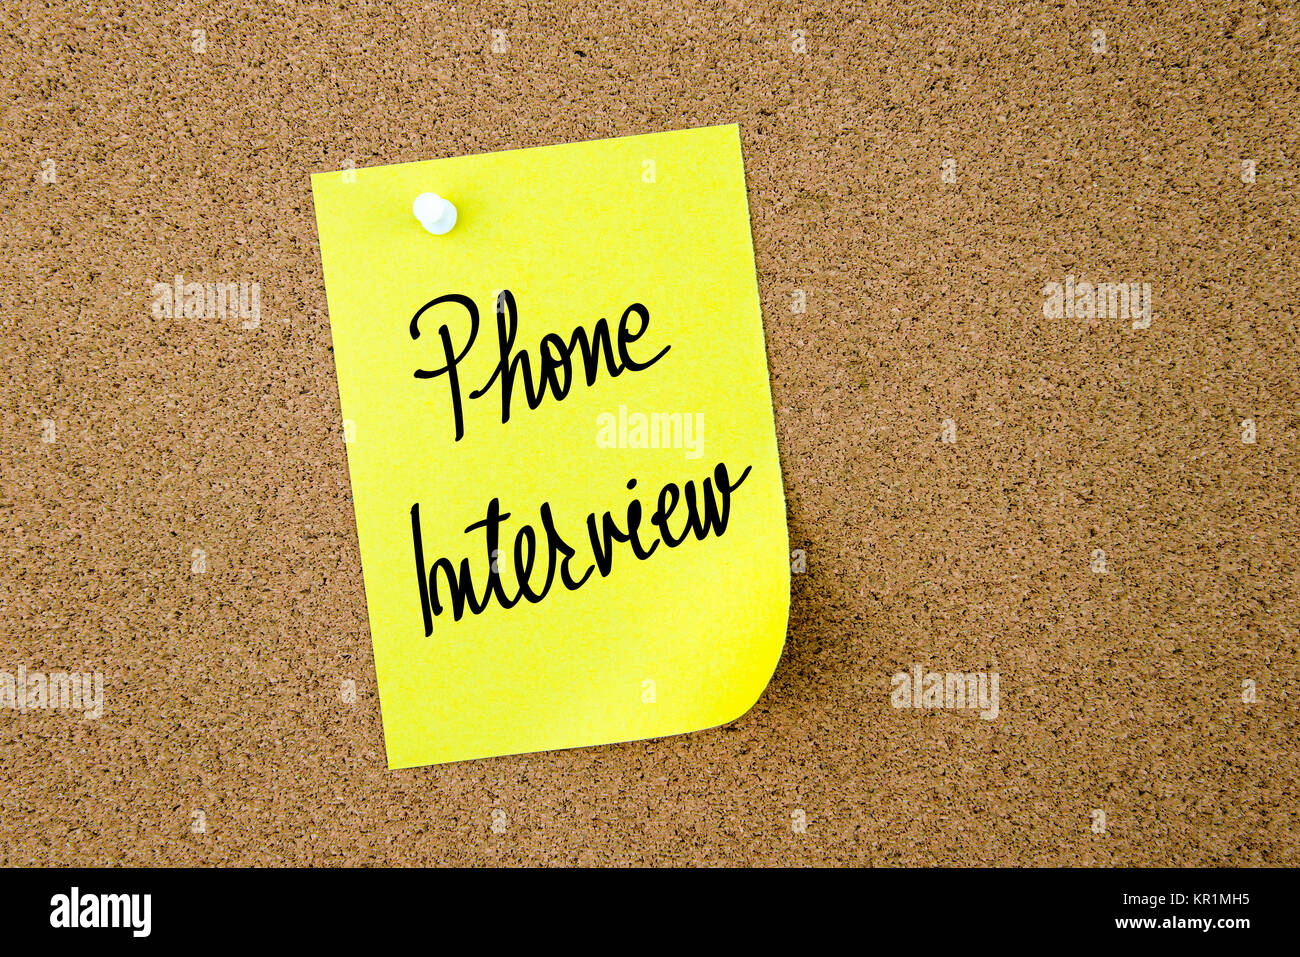 Phone Interview written on yellow paper note - Stock Image